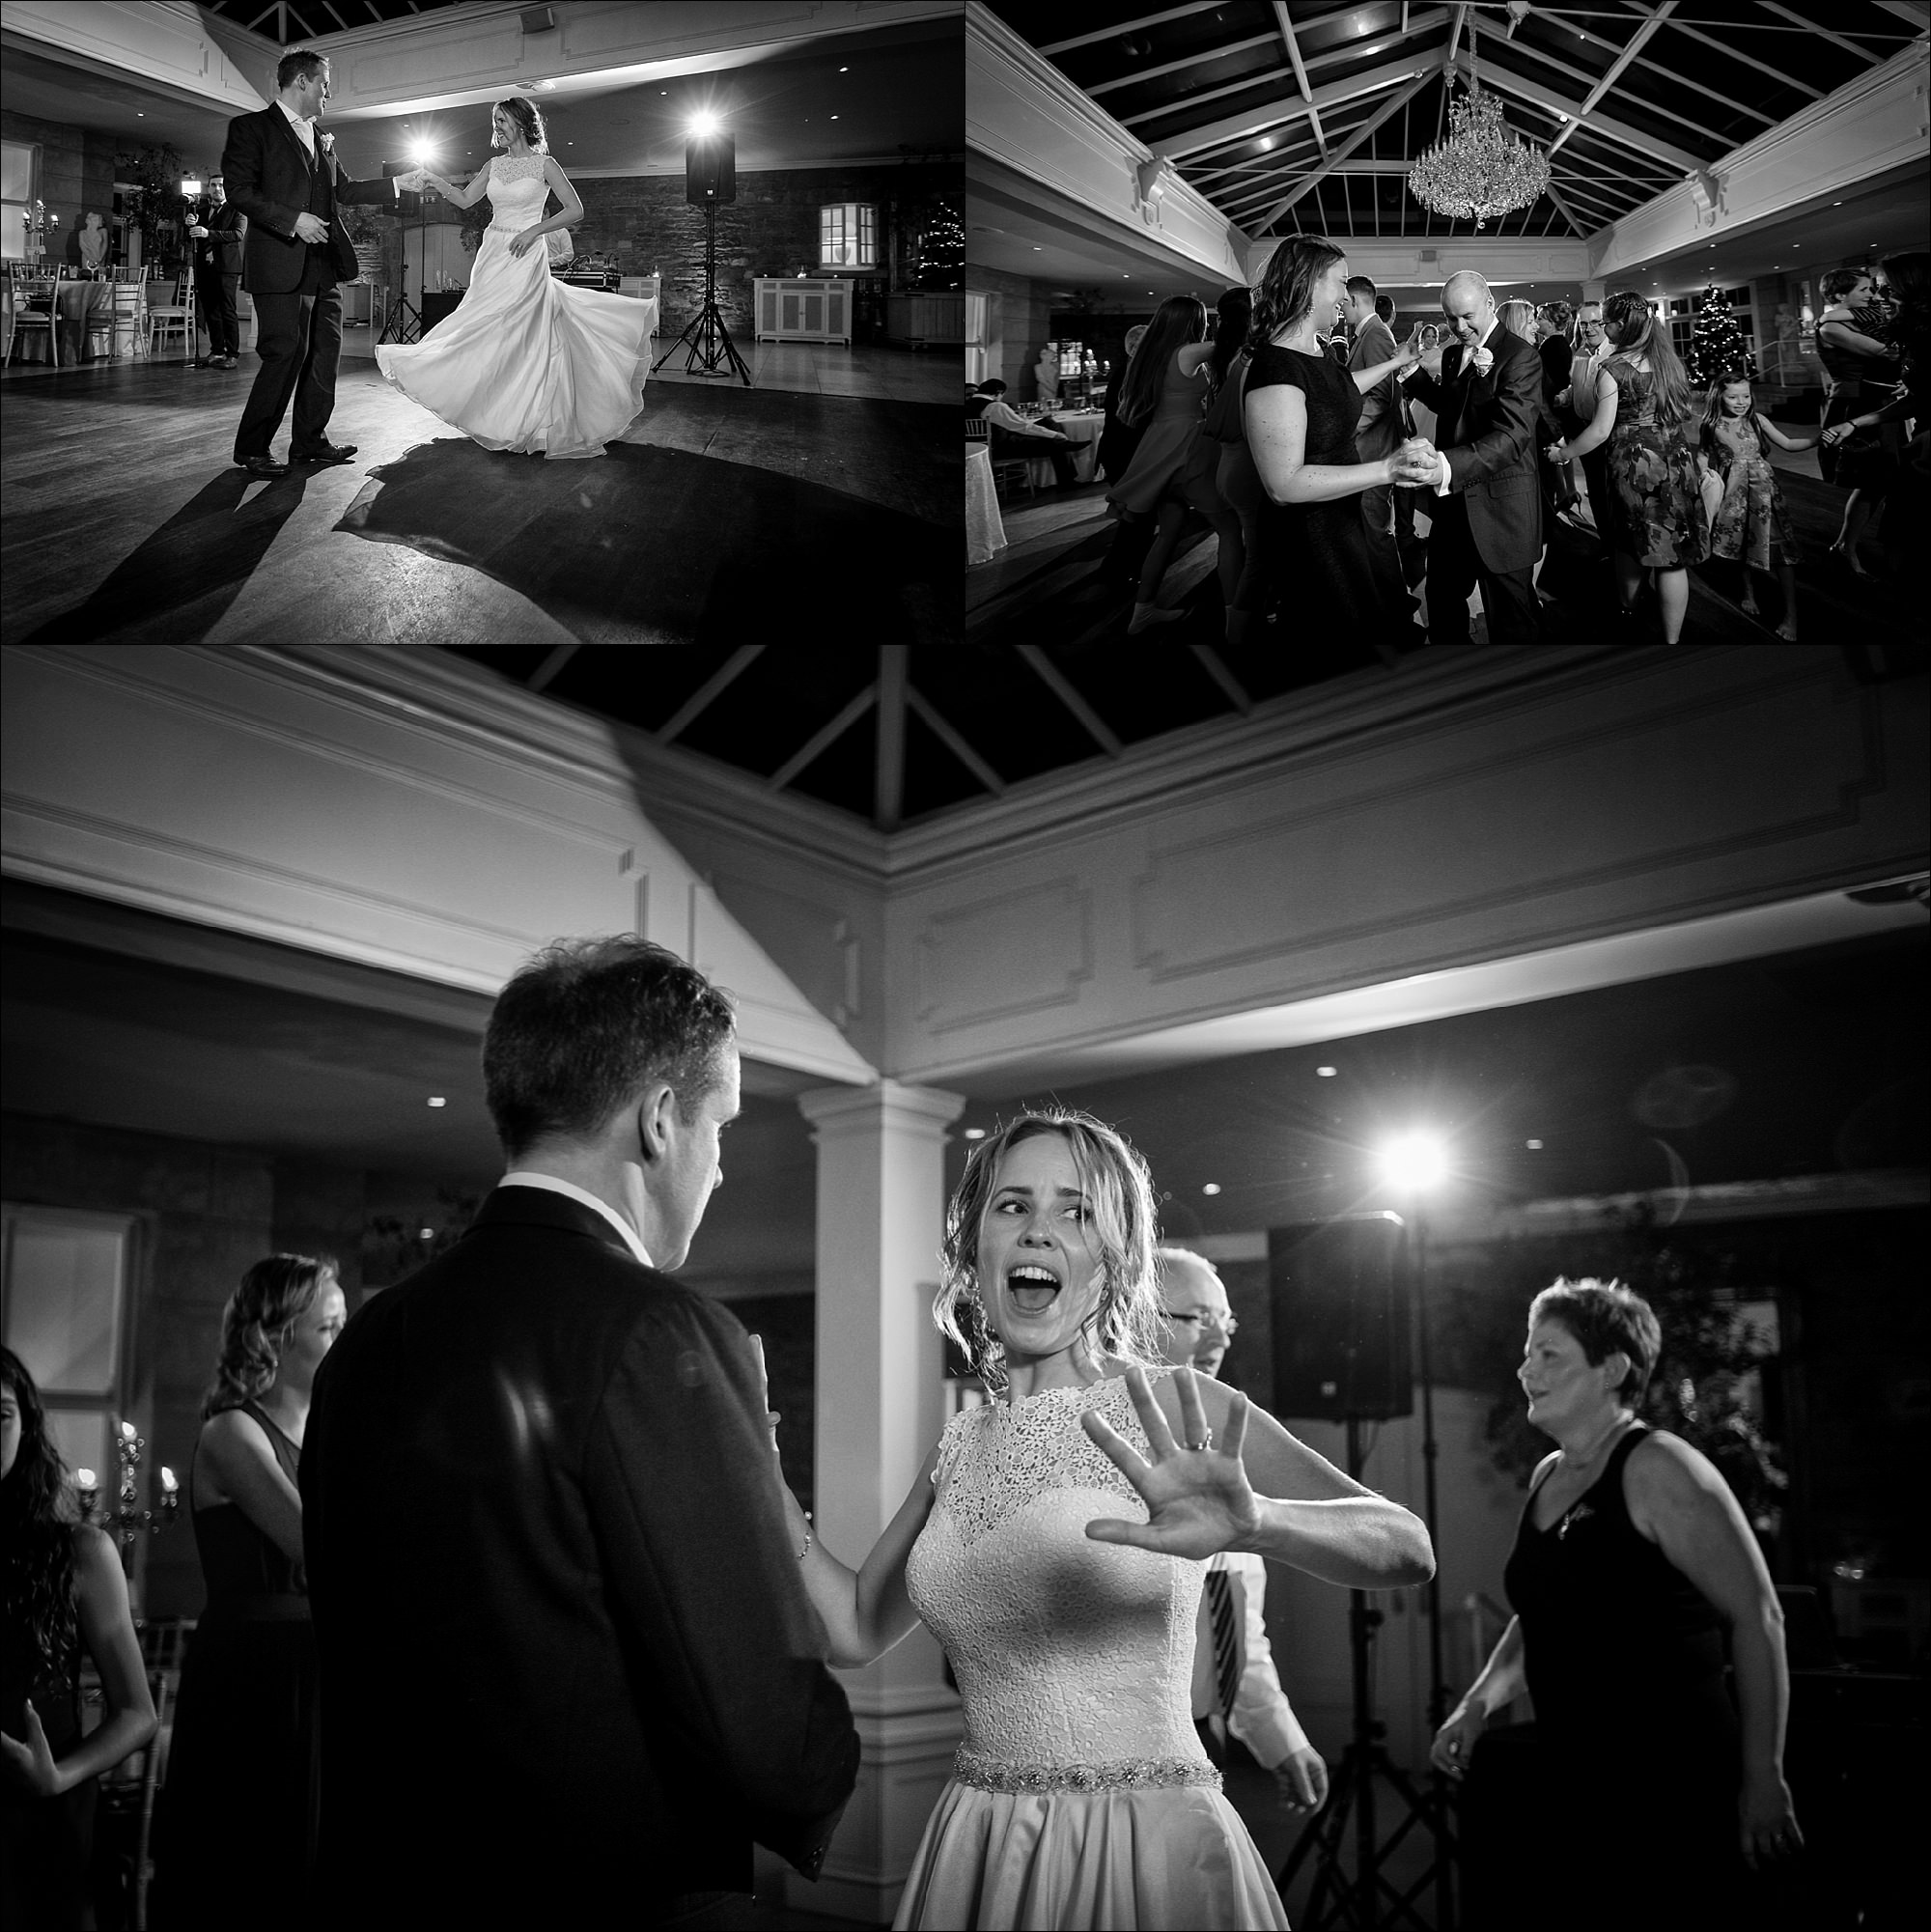 dublin wedding photographer david duignan photography tankardstown weddings slane rathfeigh church ireland 0058